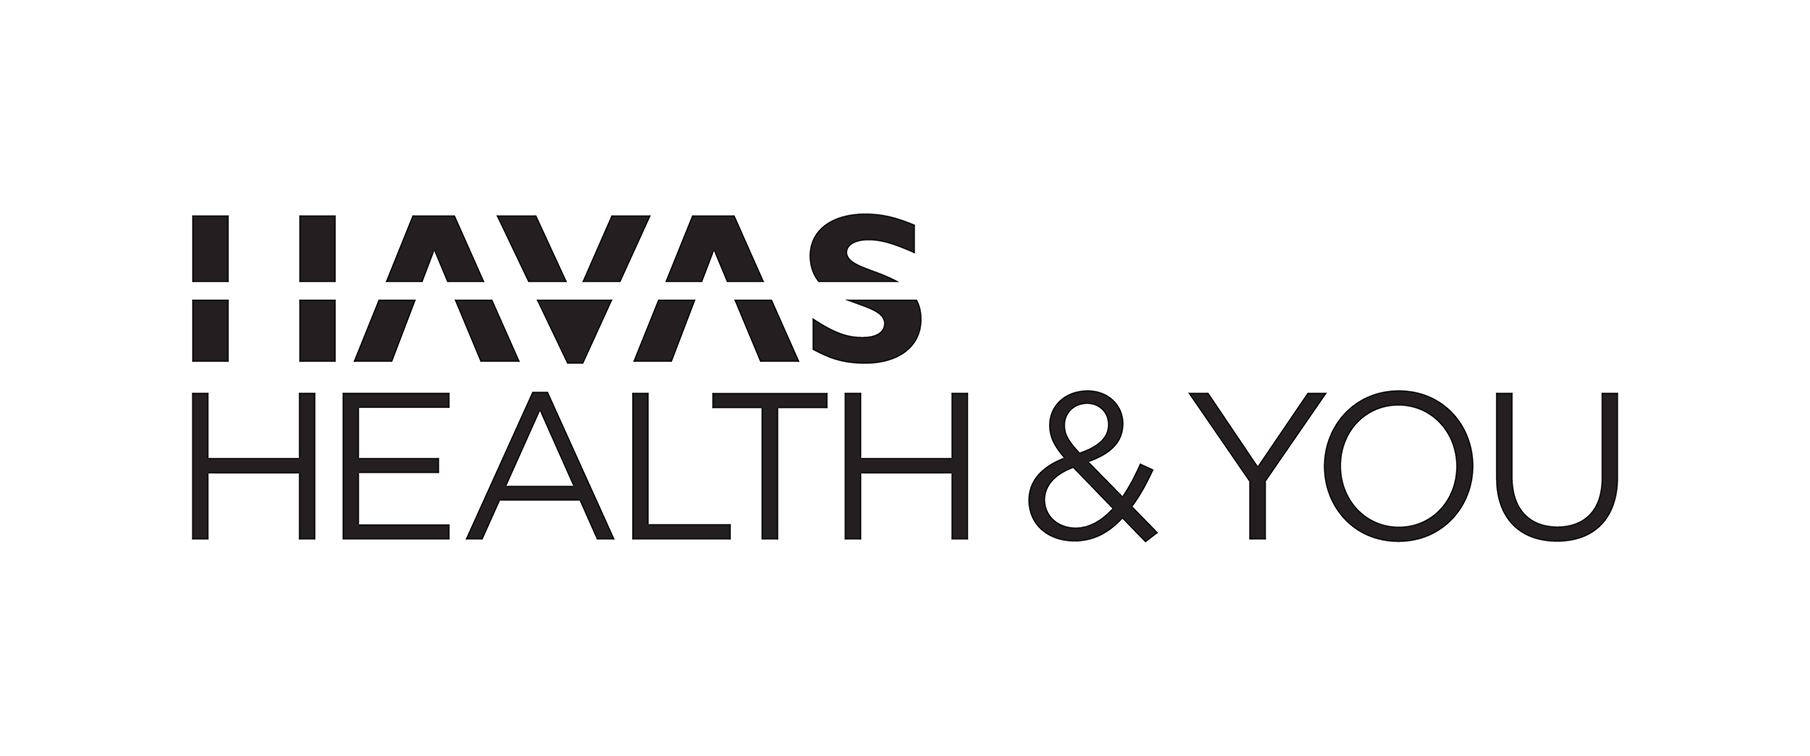 Havas Health & You elevates leaders in India, Southeast Asia & Middle East